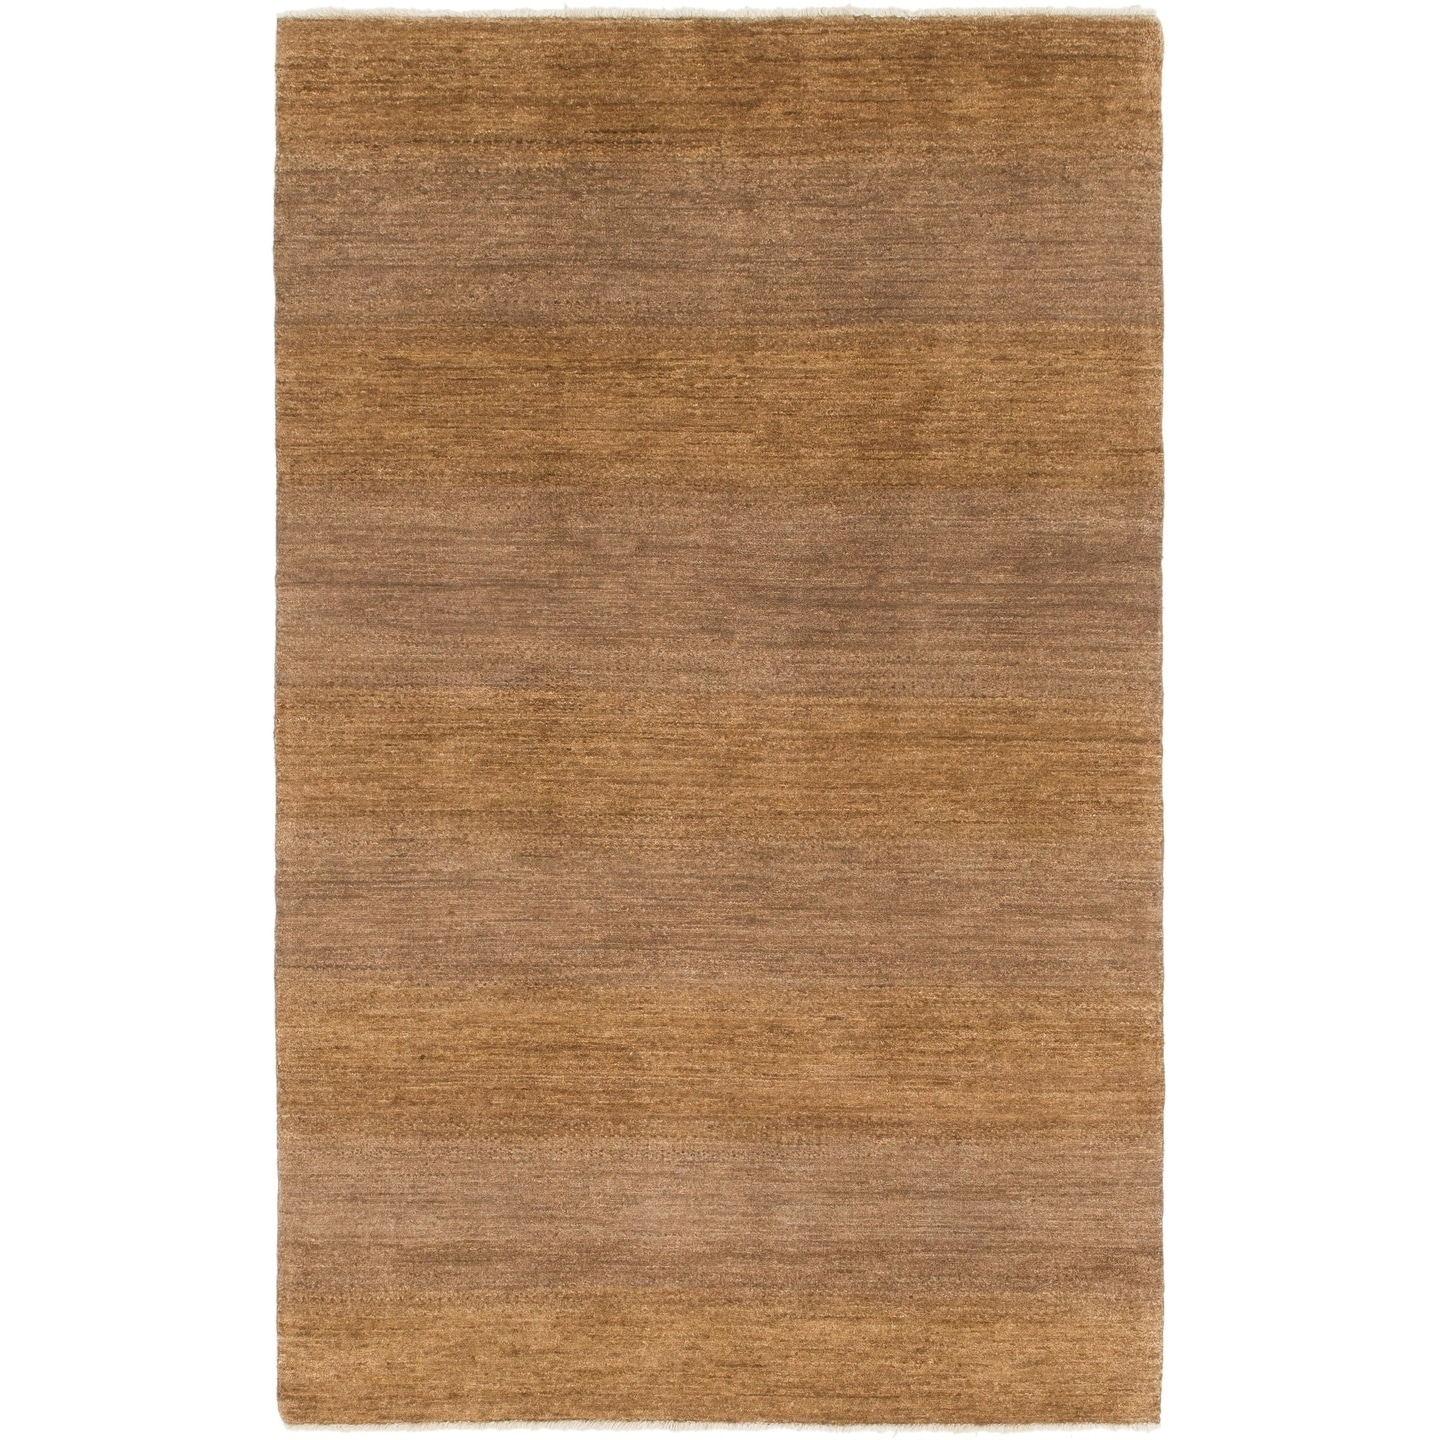 Hand Knotted Kashkuli Gabbeh Wool Area Rug - 4 2 x 6 8 (Brown - 4 2 x 6 8)